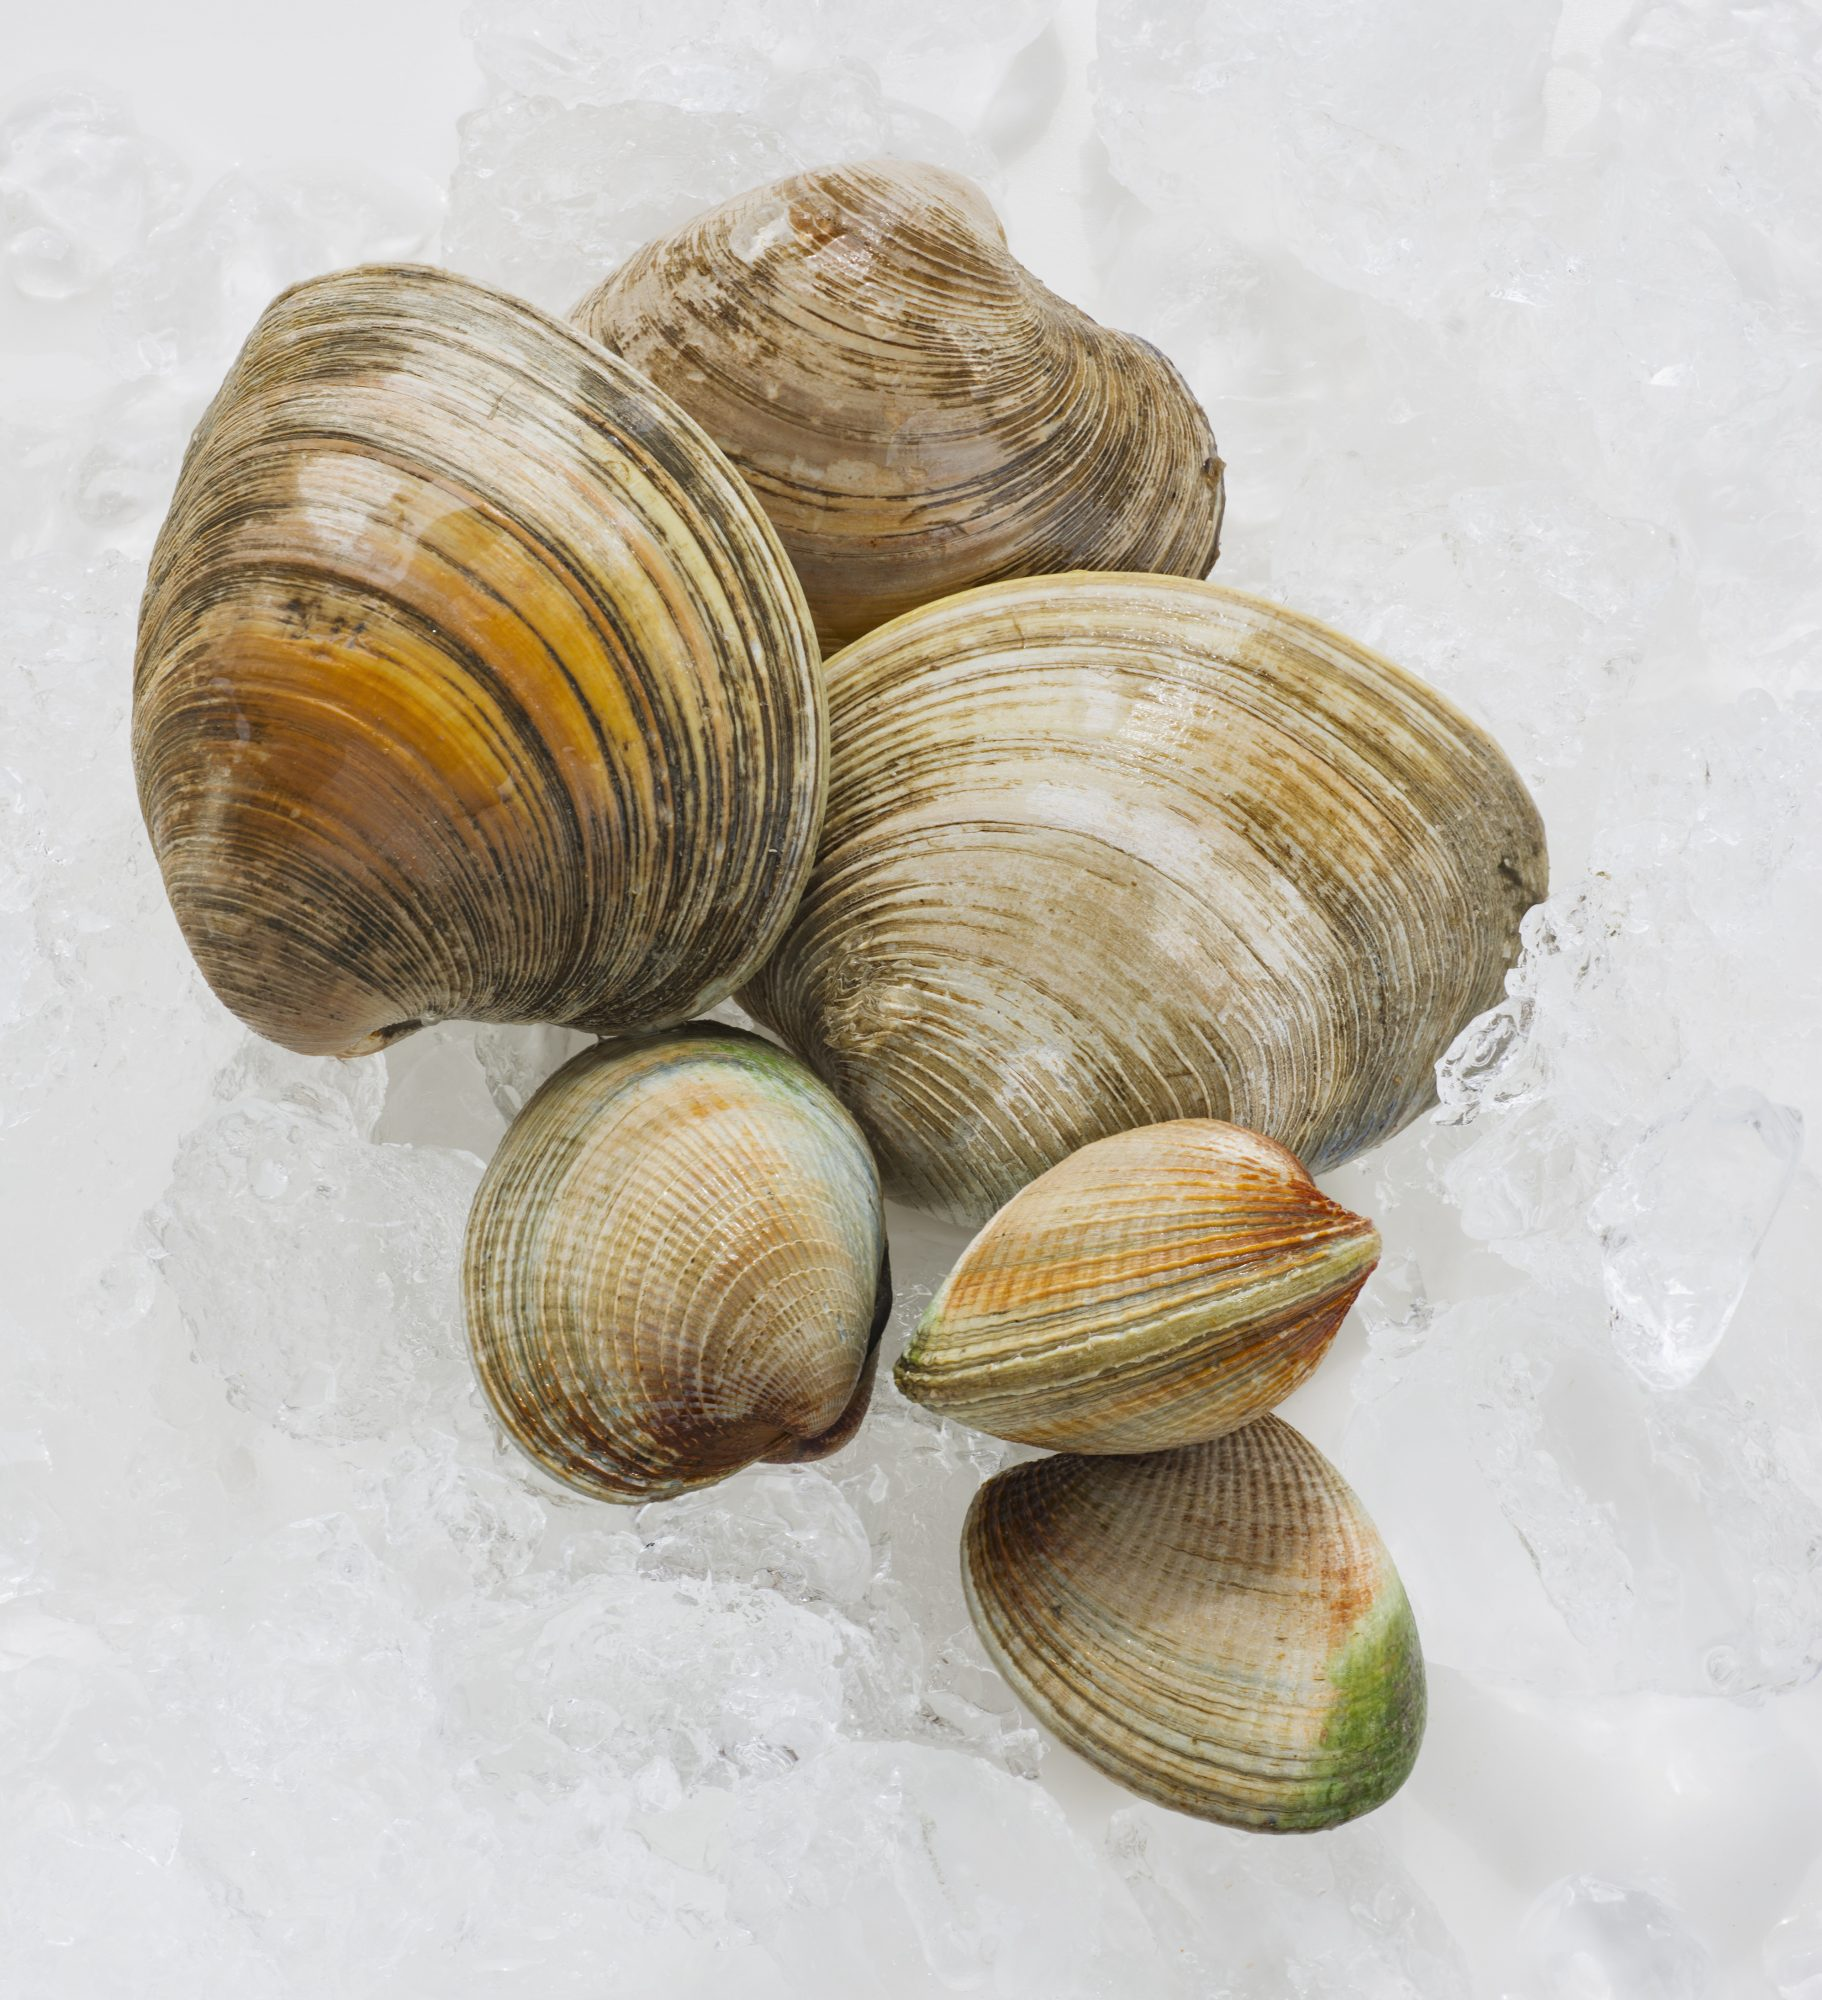 07-clams-seafood